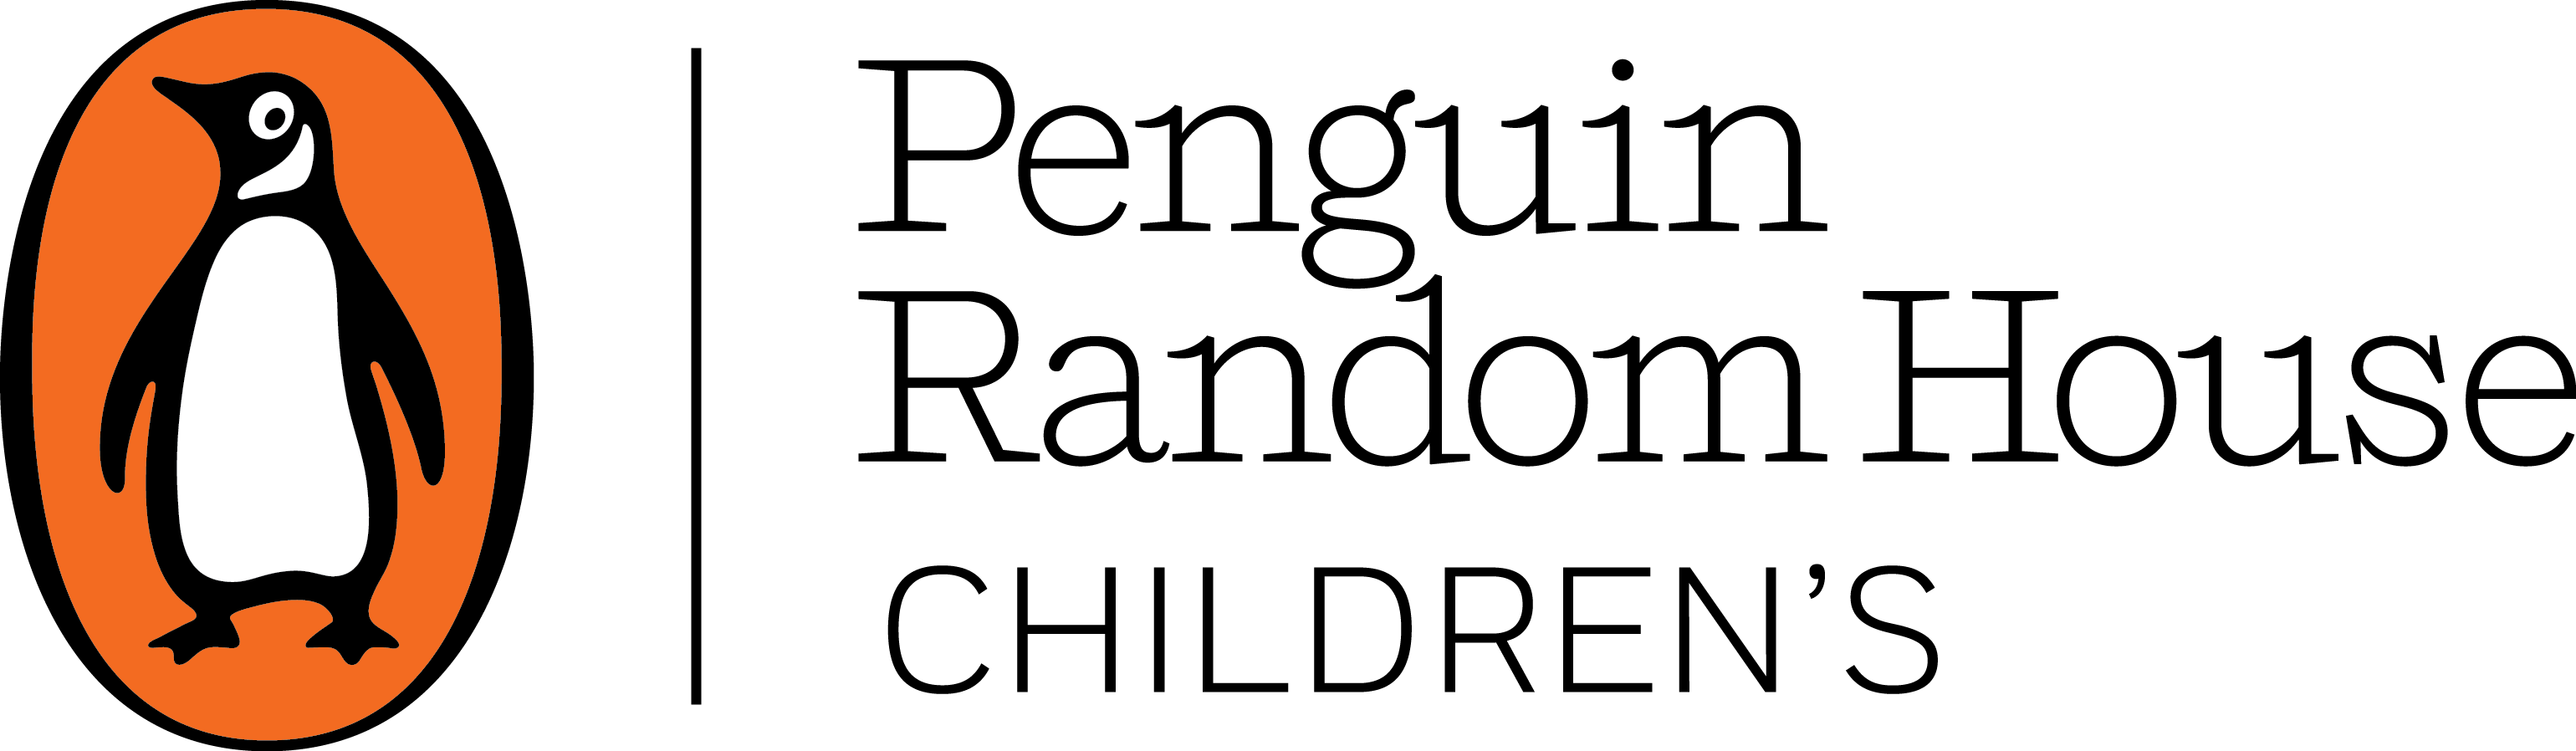 penguinrandomhouse